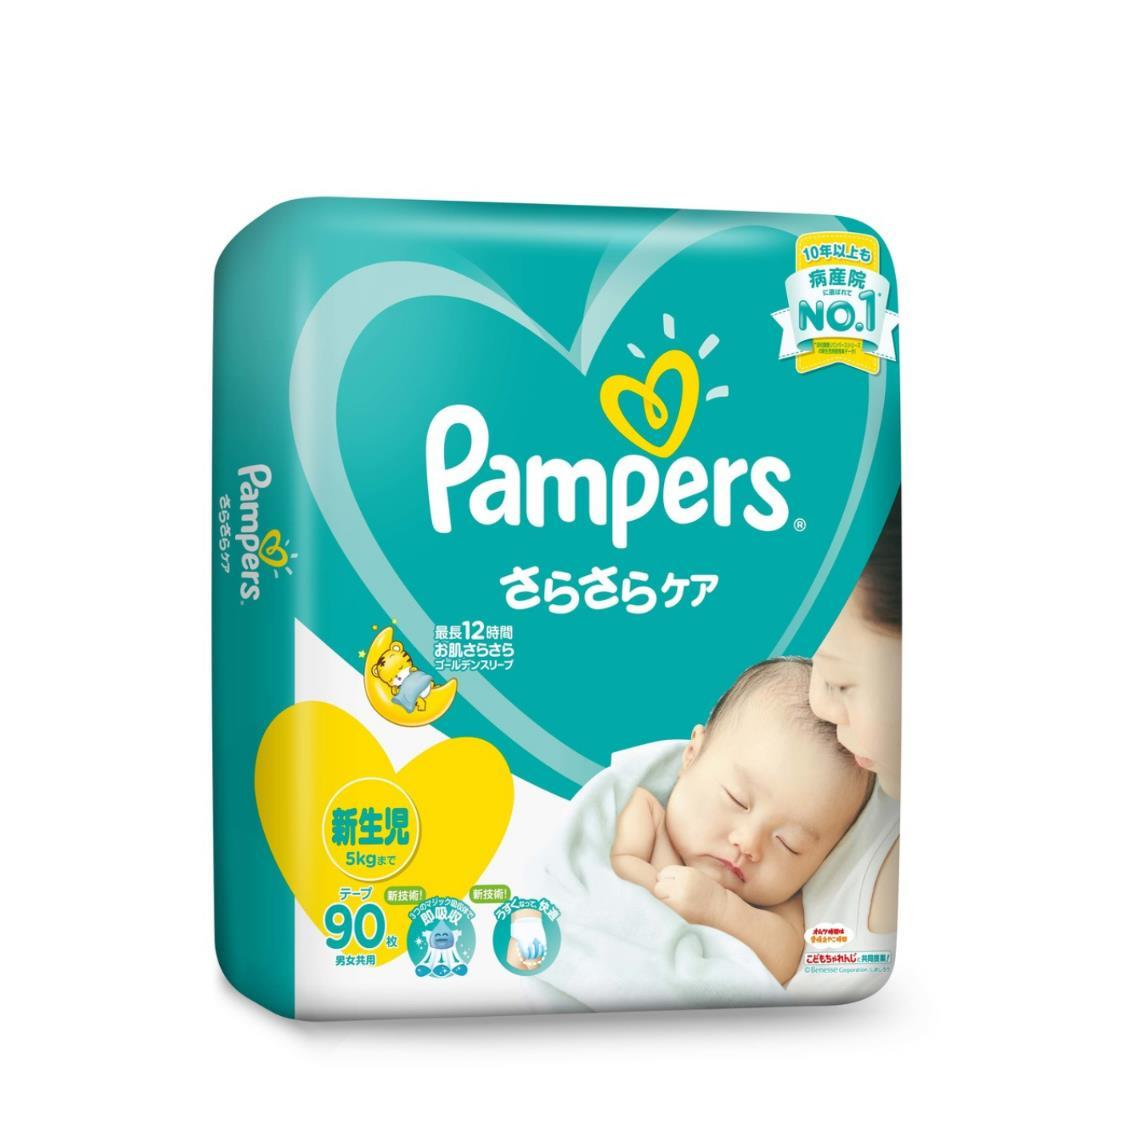 Pampers Baby Dry Diapers  NB 90s up to 5kg